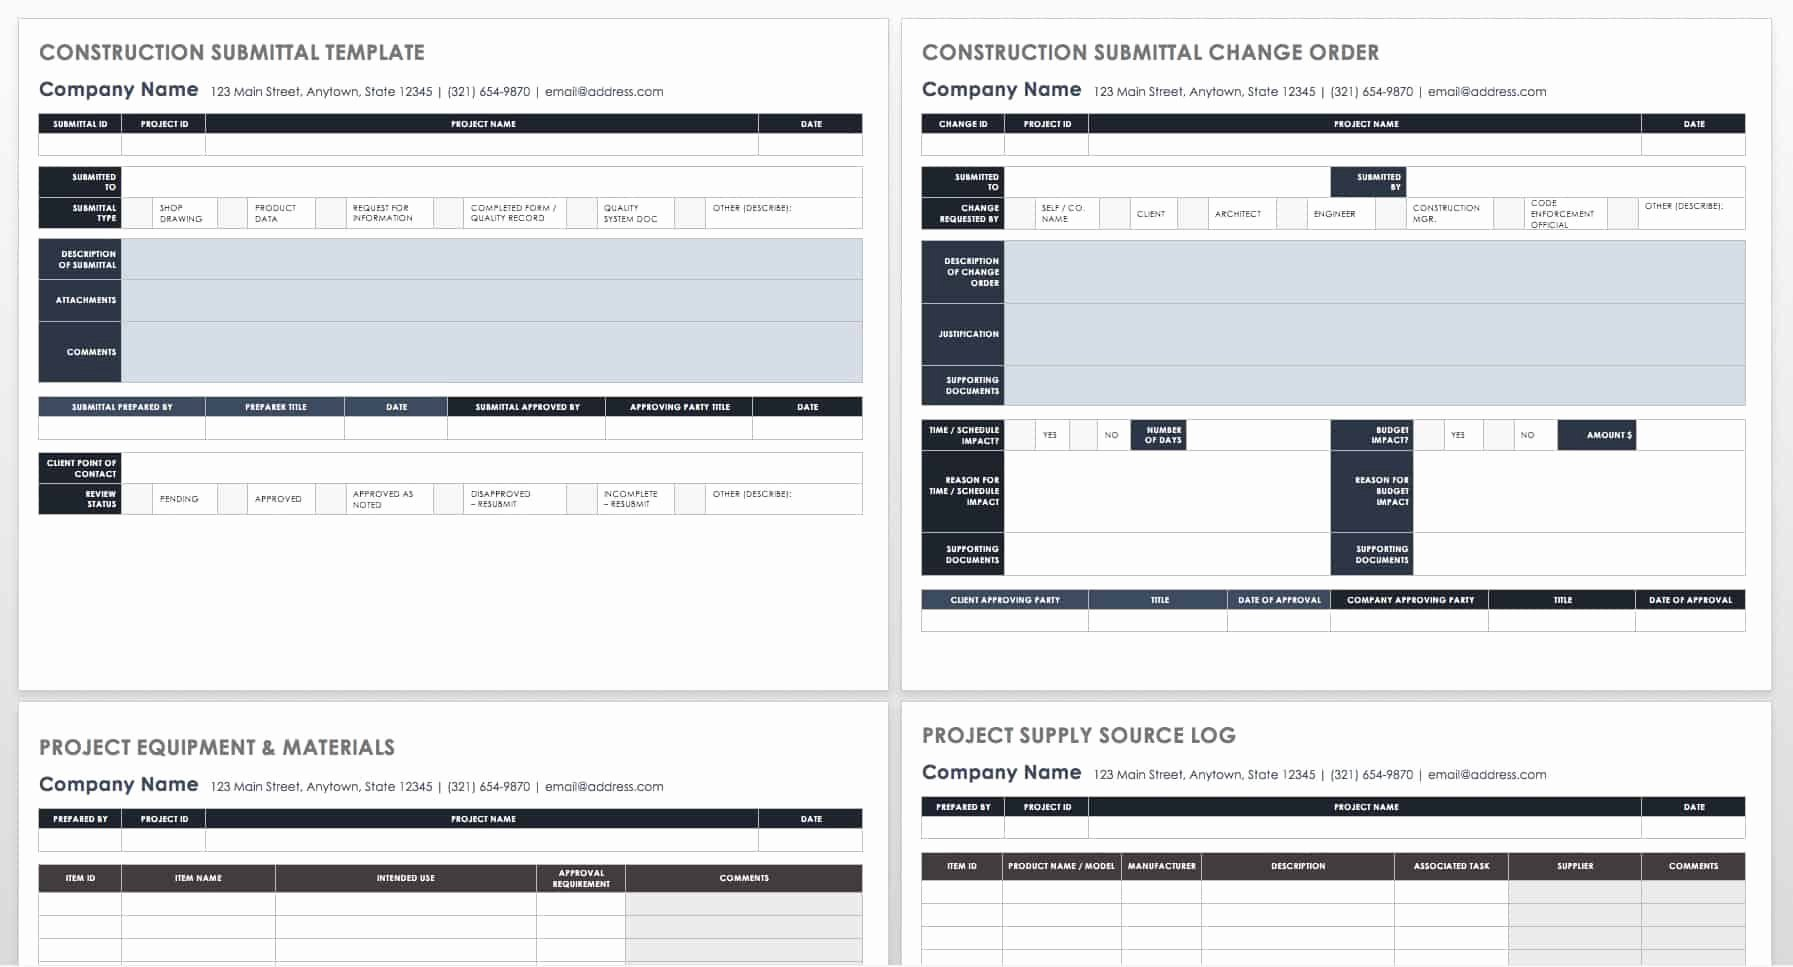 Construction Submittal Schedule Template Luxury How to Manage Construction Submittals